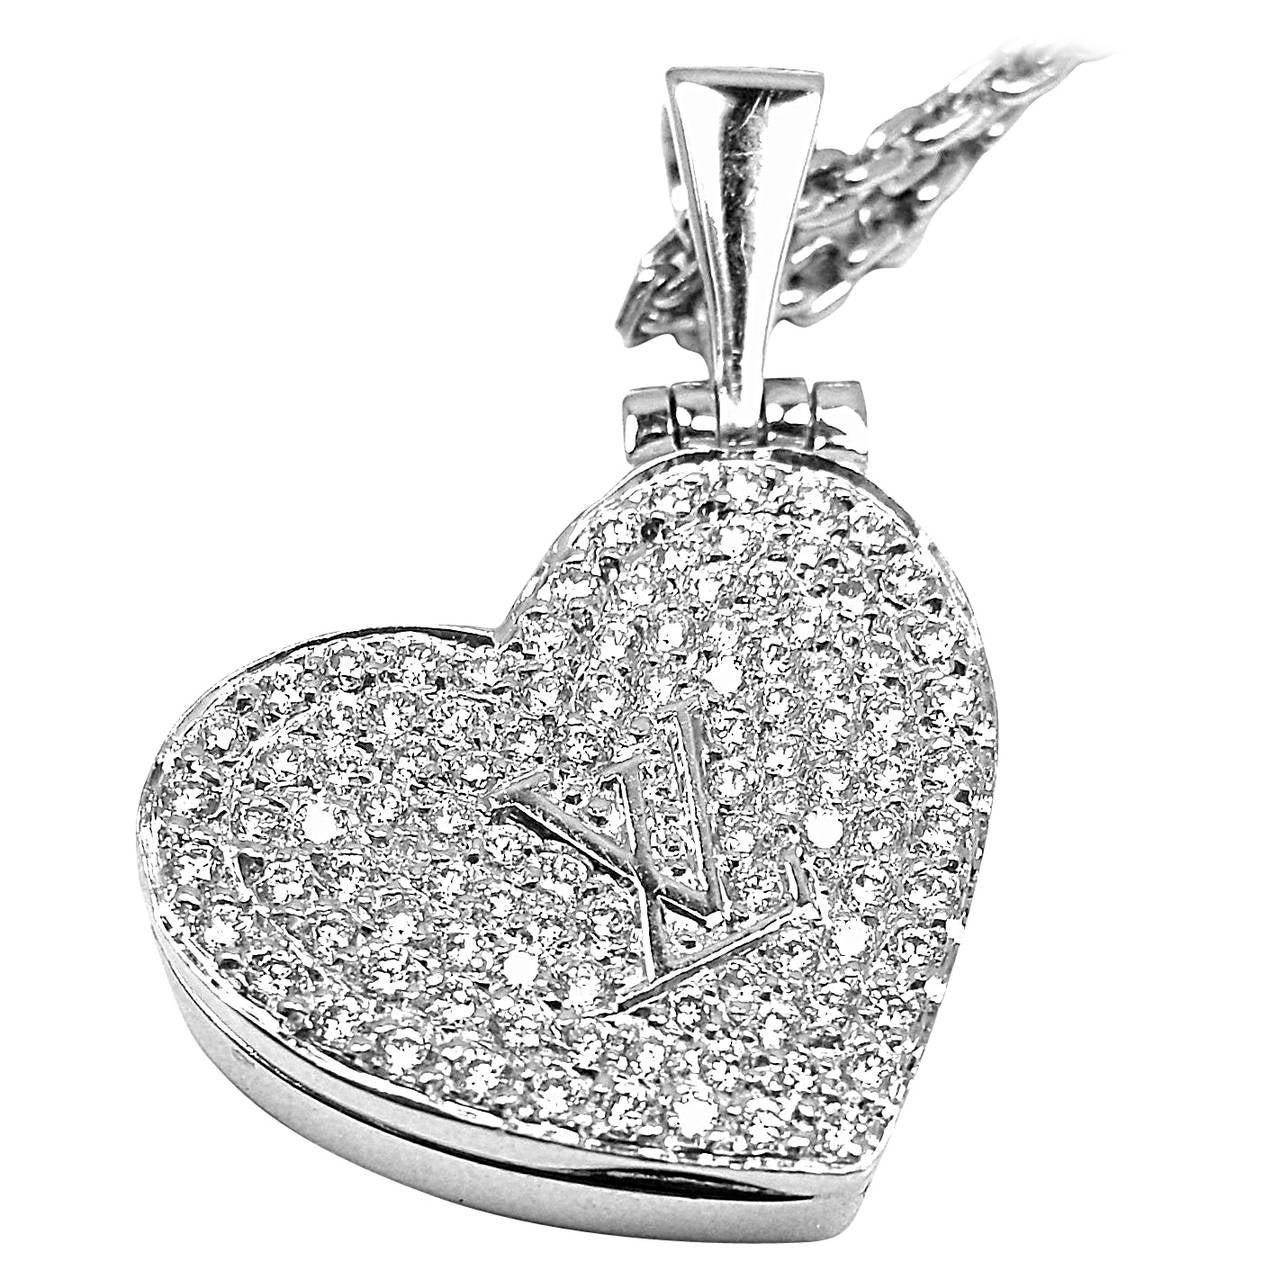 Louis vuitton diamond heart locket white gold pendant necklace at louis vuitton diamond heart locket white gold pendant necklace for sale aloadofball Images